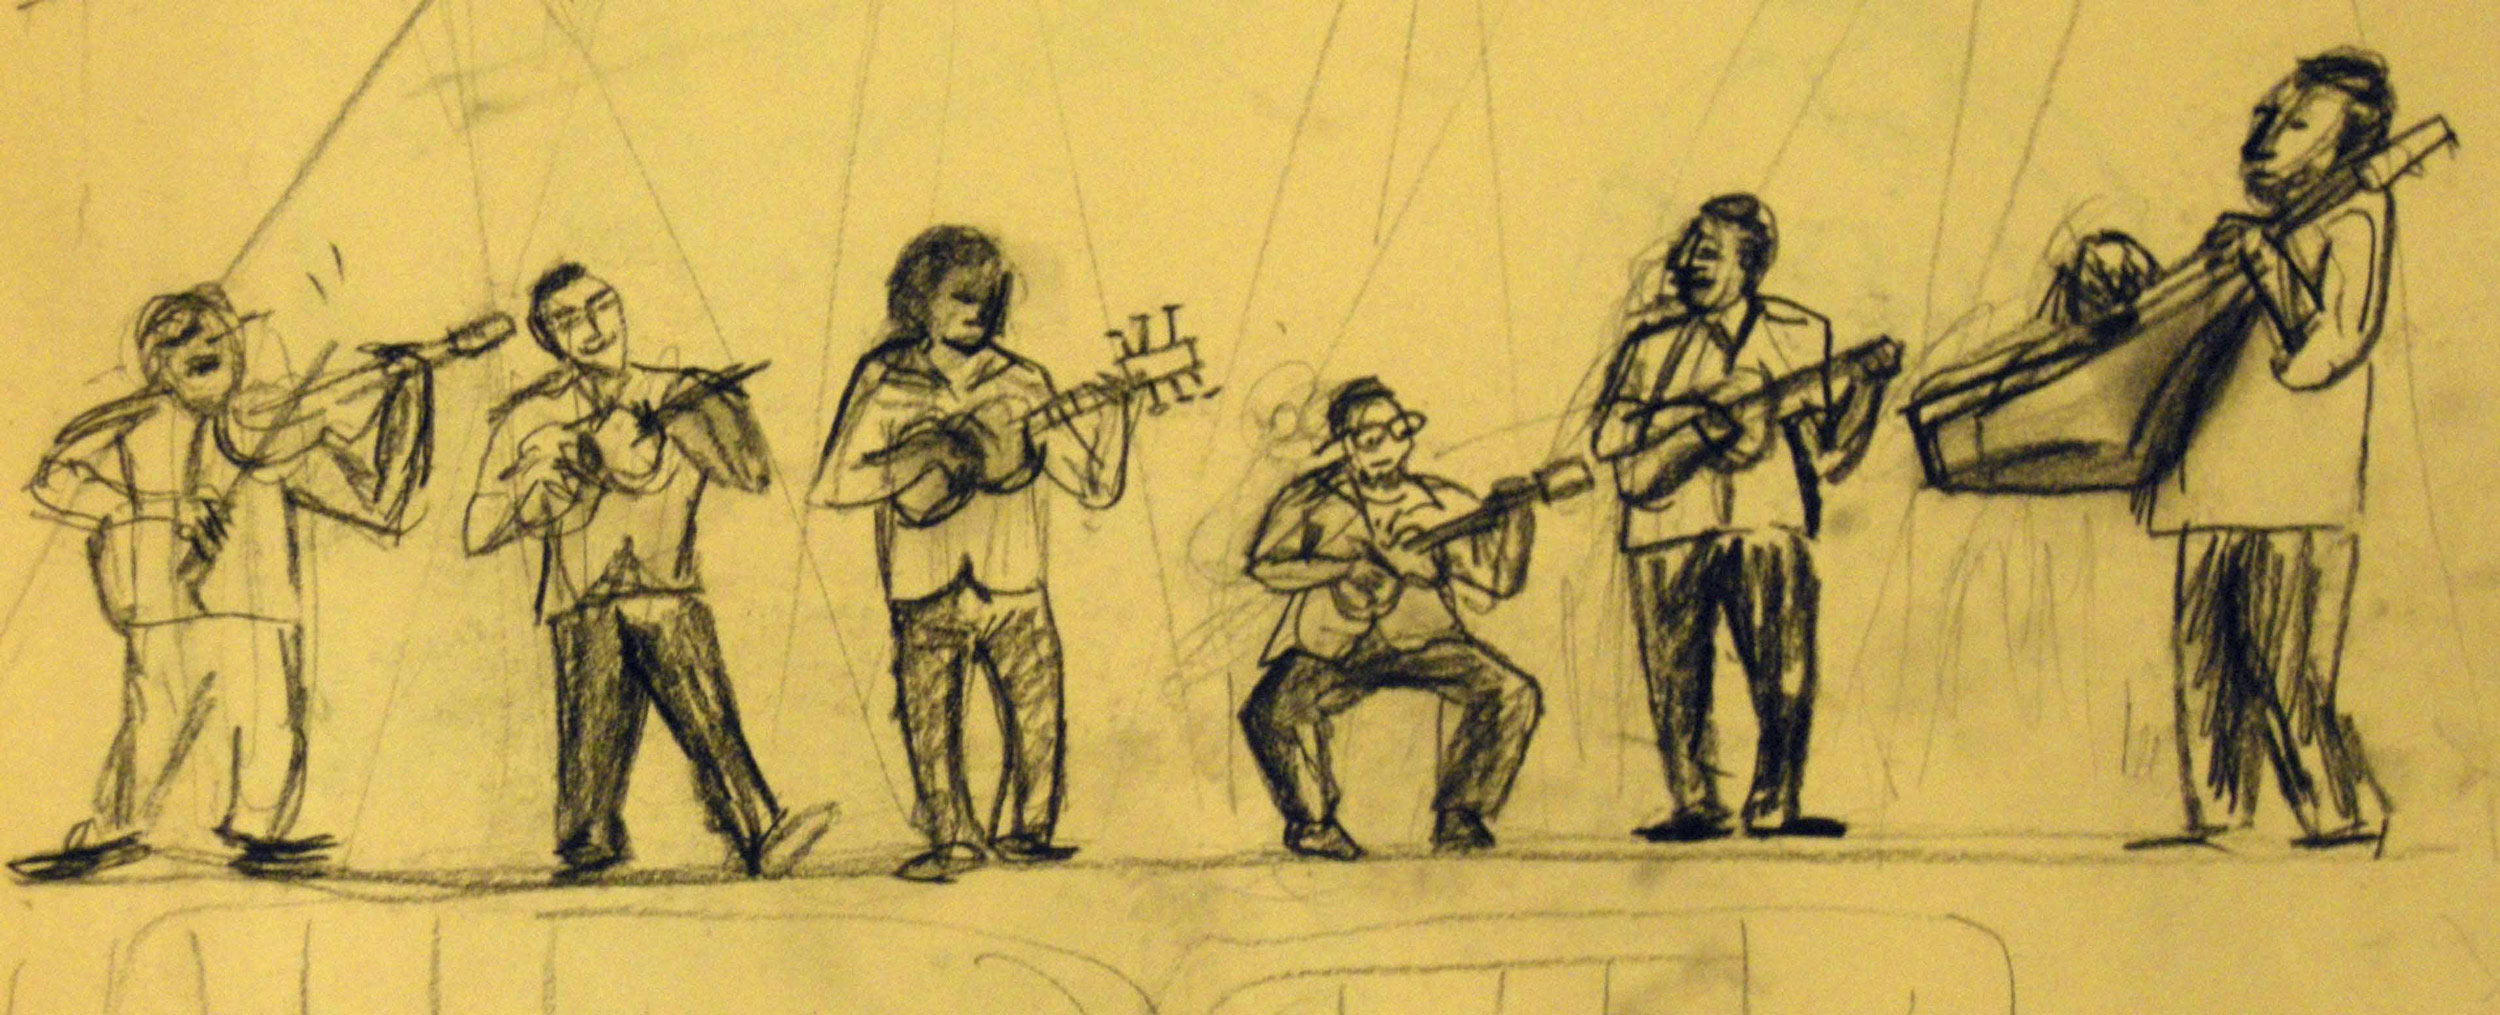 JARANA PLAYERS / VERACRUZ  Charcoal on coloured paper | 40 x 20 cm  (original only available) £70